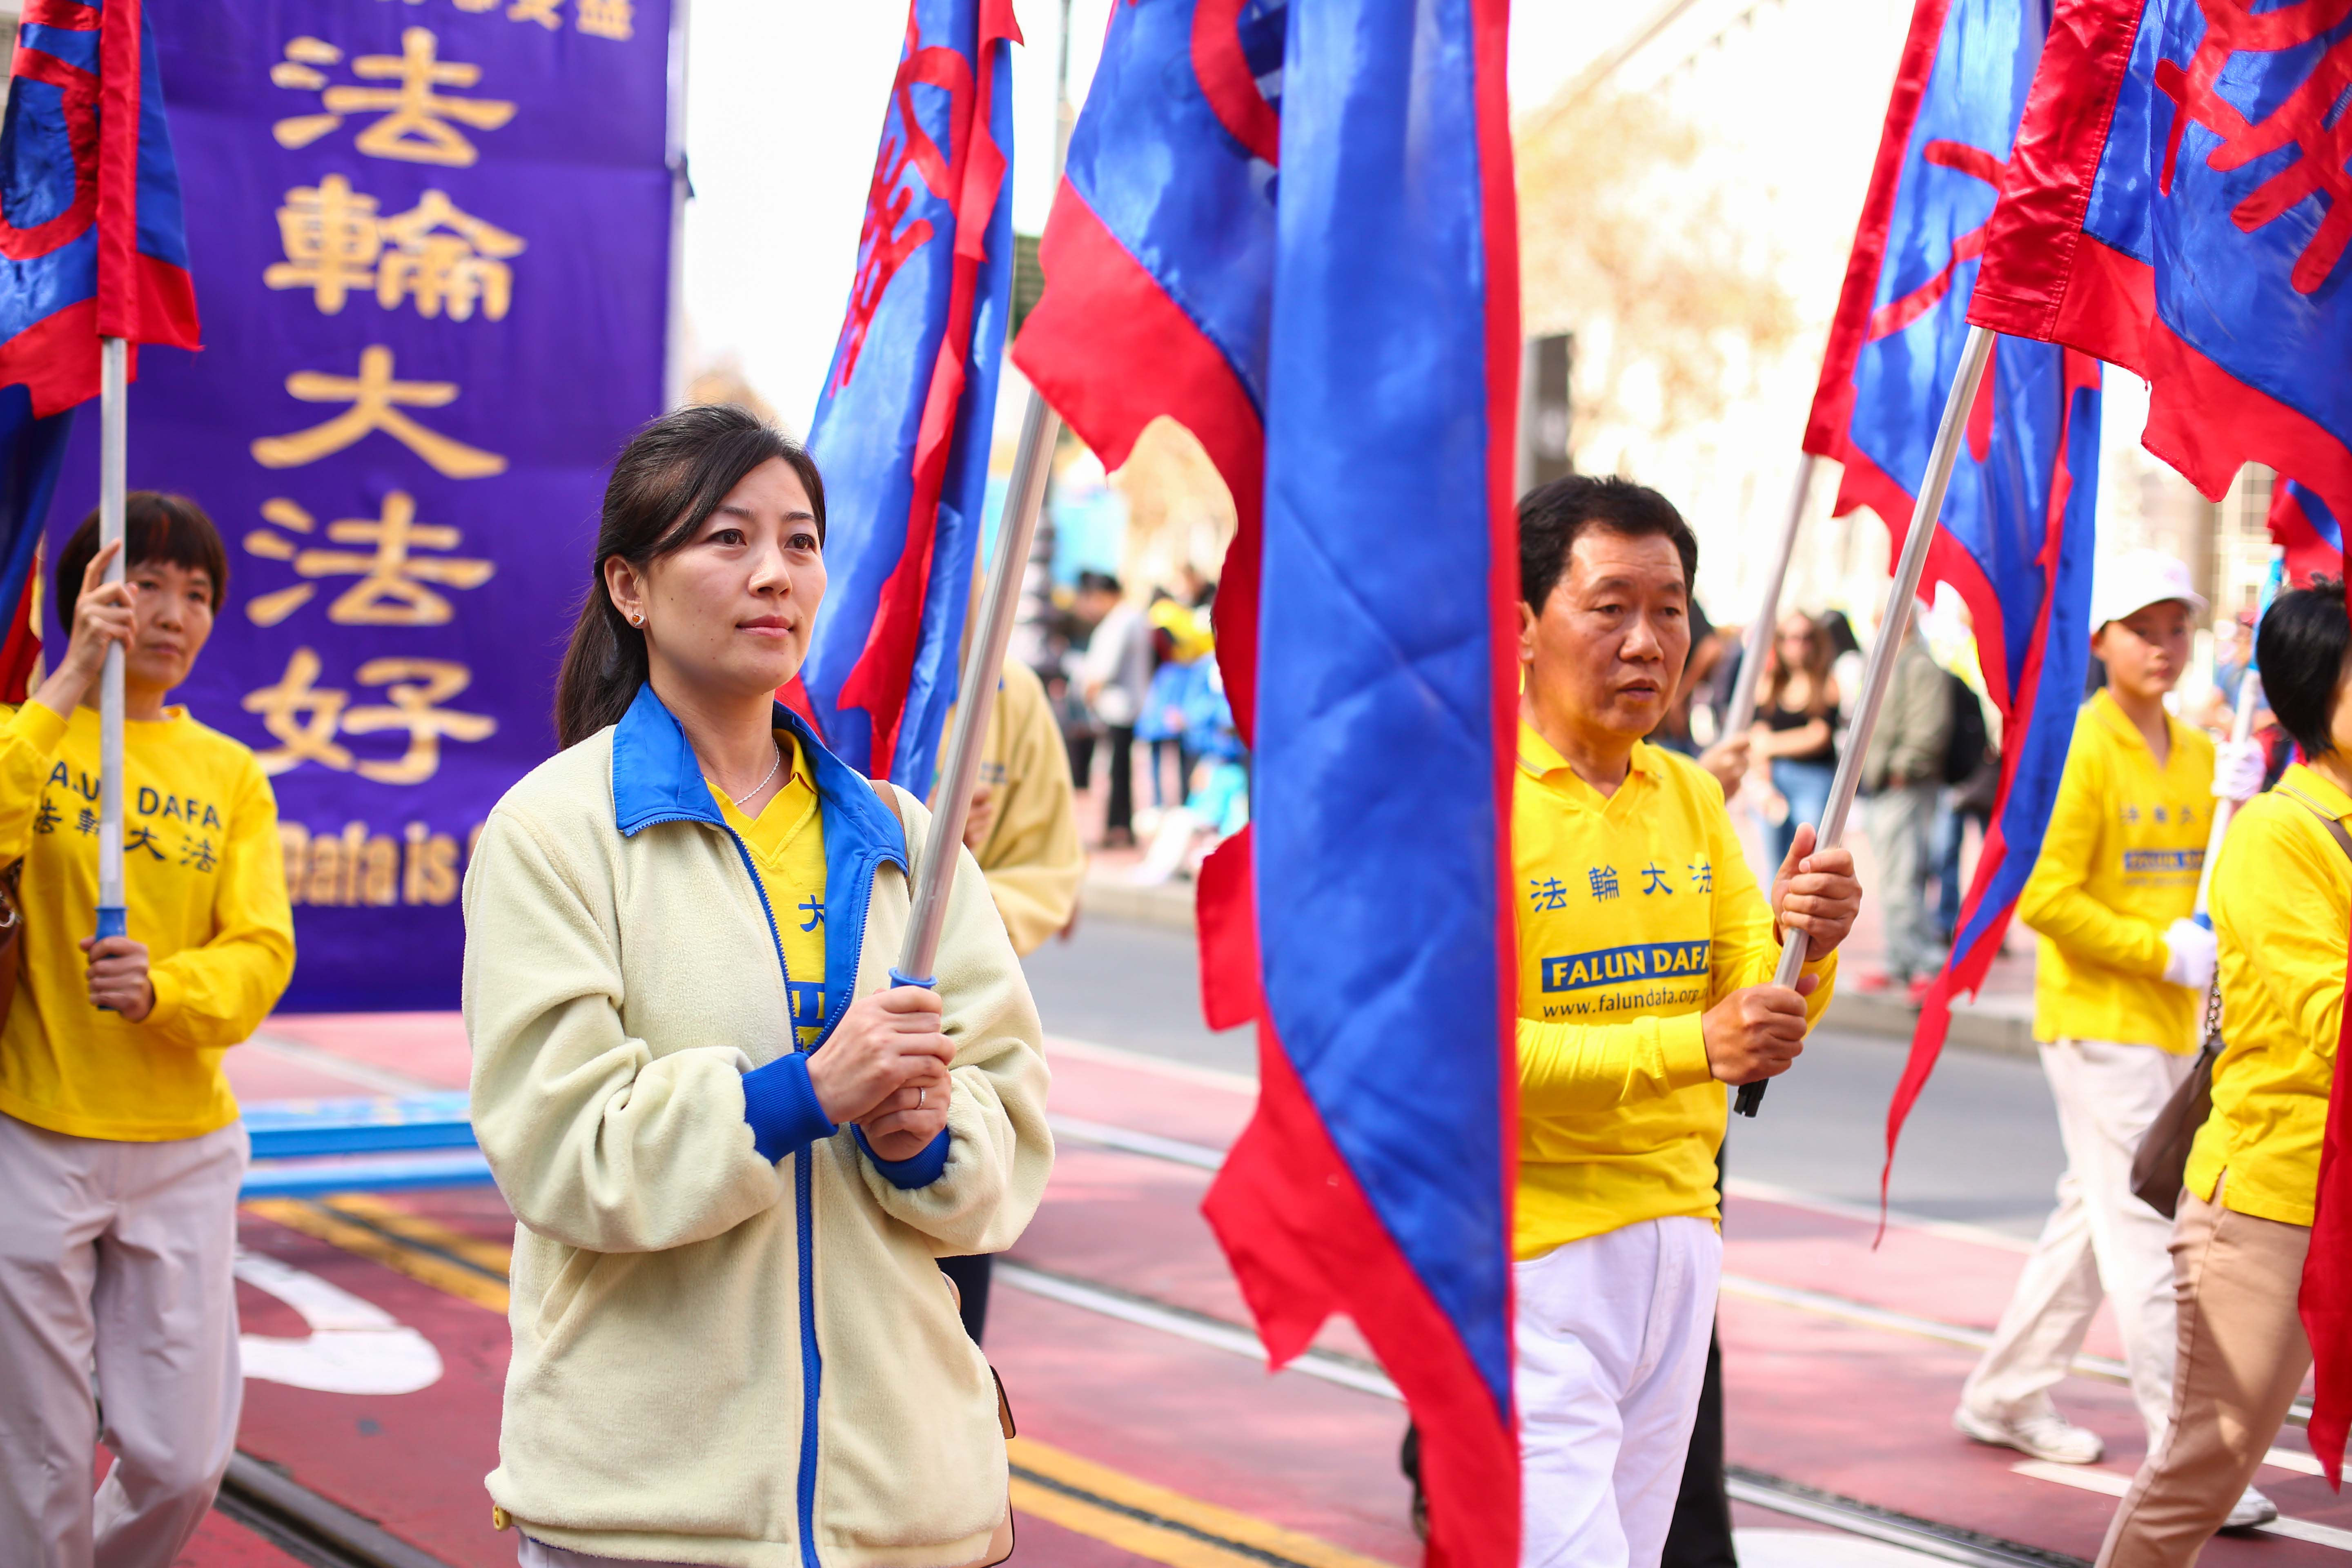 Over 5,000 practitioners and supporters of Falun Gong from over 30 countries march in a parade in San Francisco on Oct. 22, 2016, bringing awareness to the practice and calling an end to the persecution in China that started on July 20, 1999. (Benjamin Chasteen/Epoch Times)